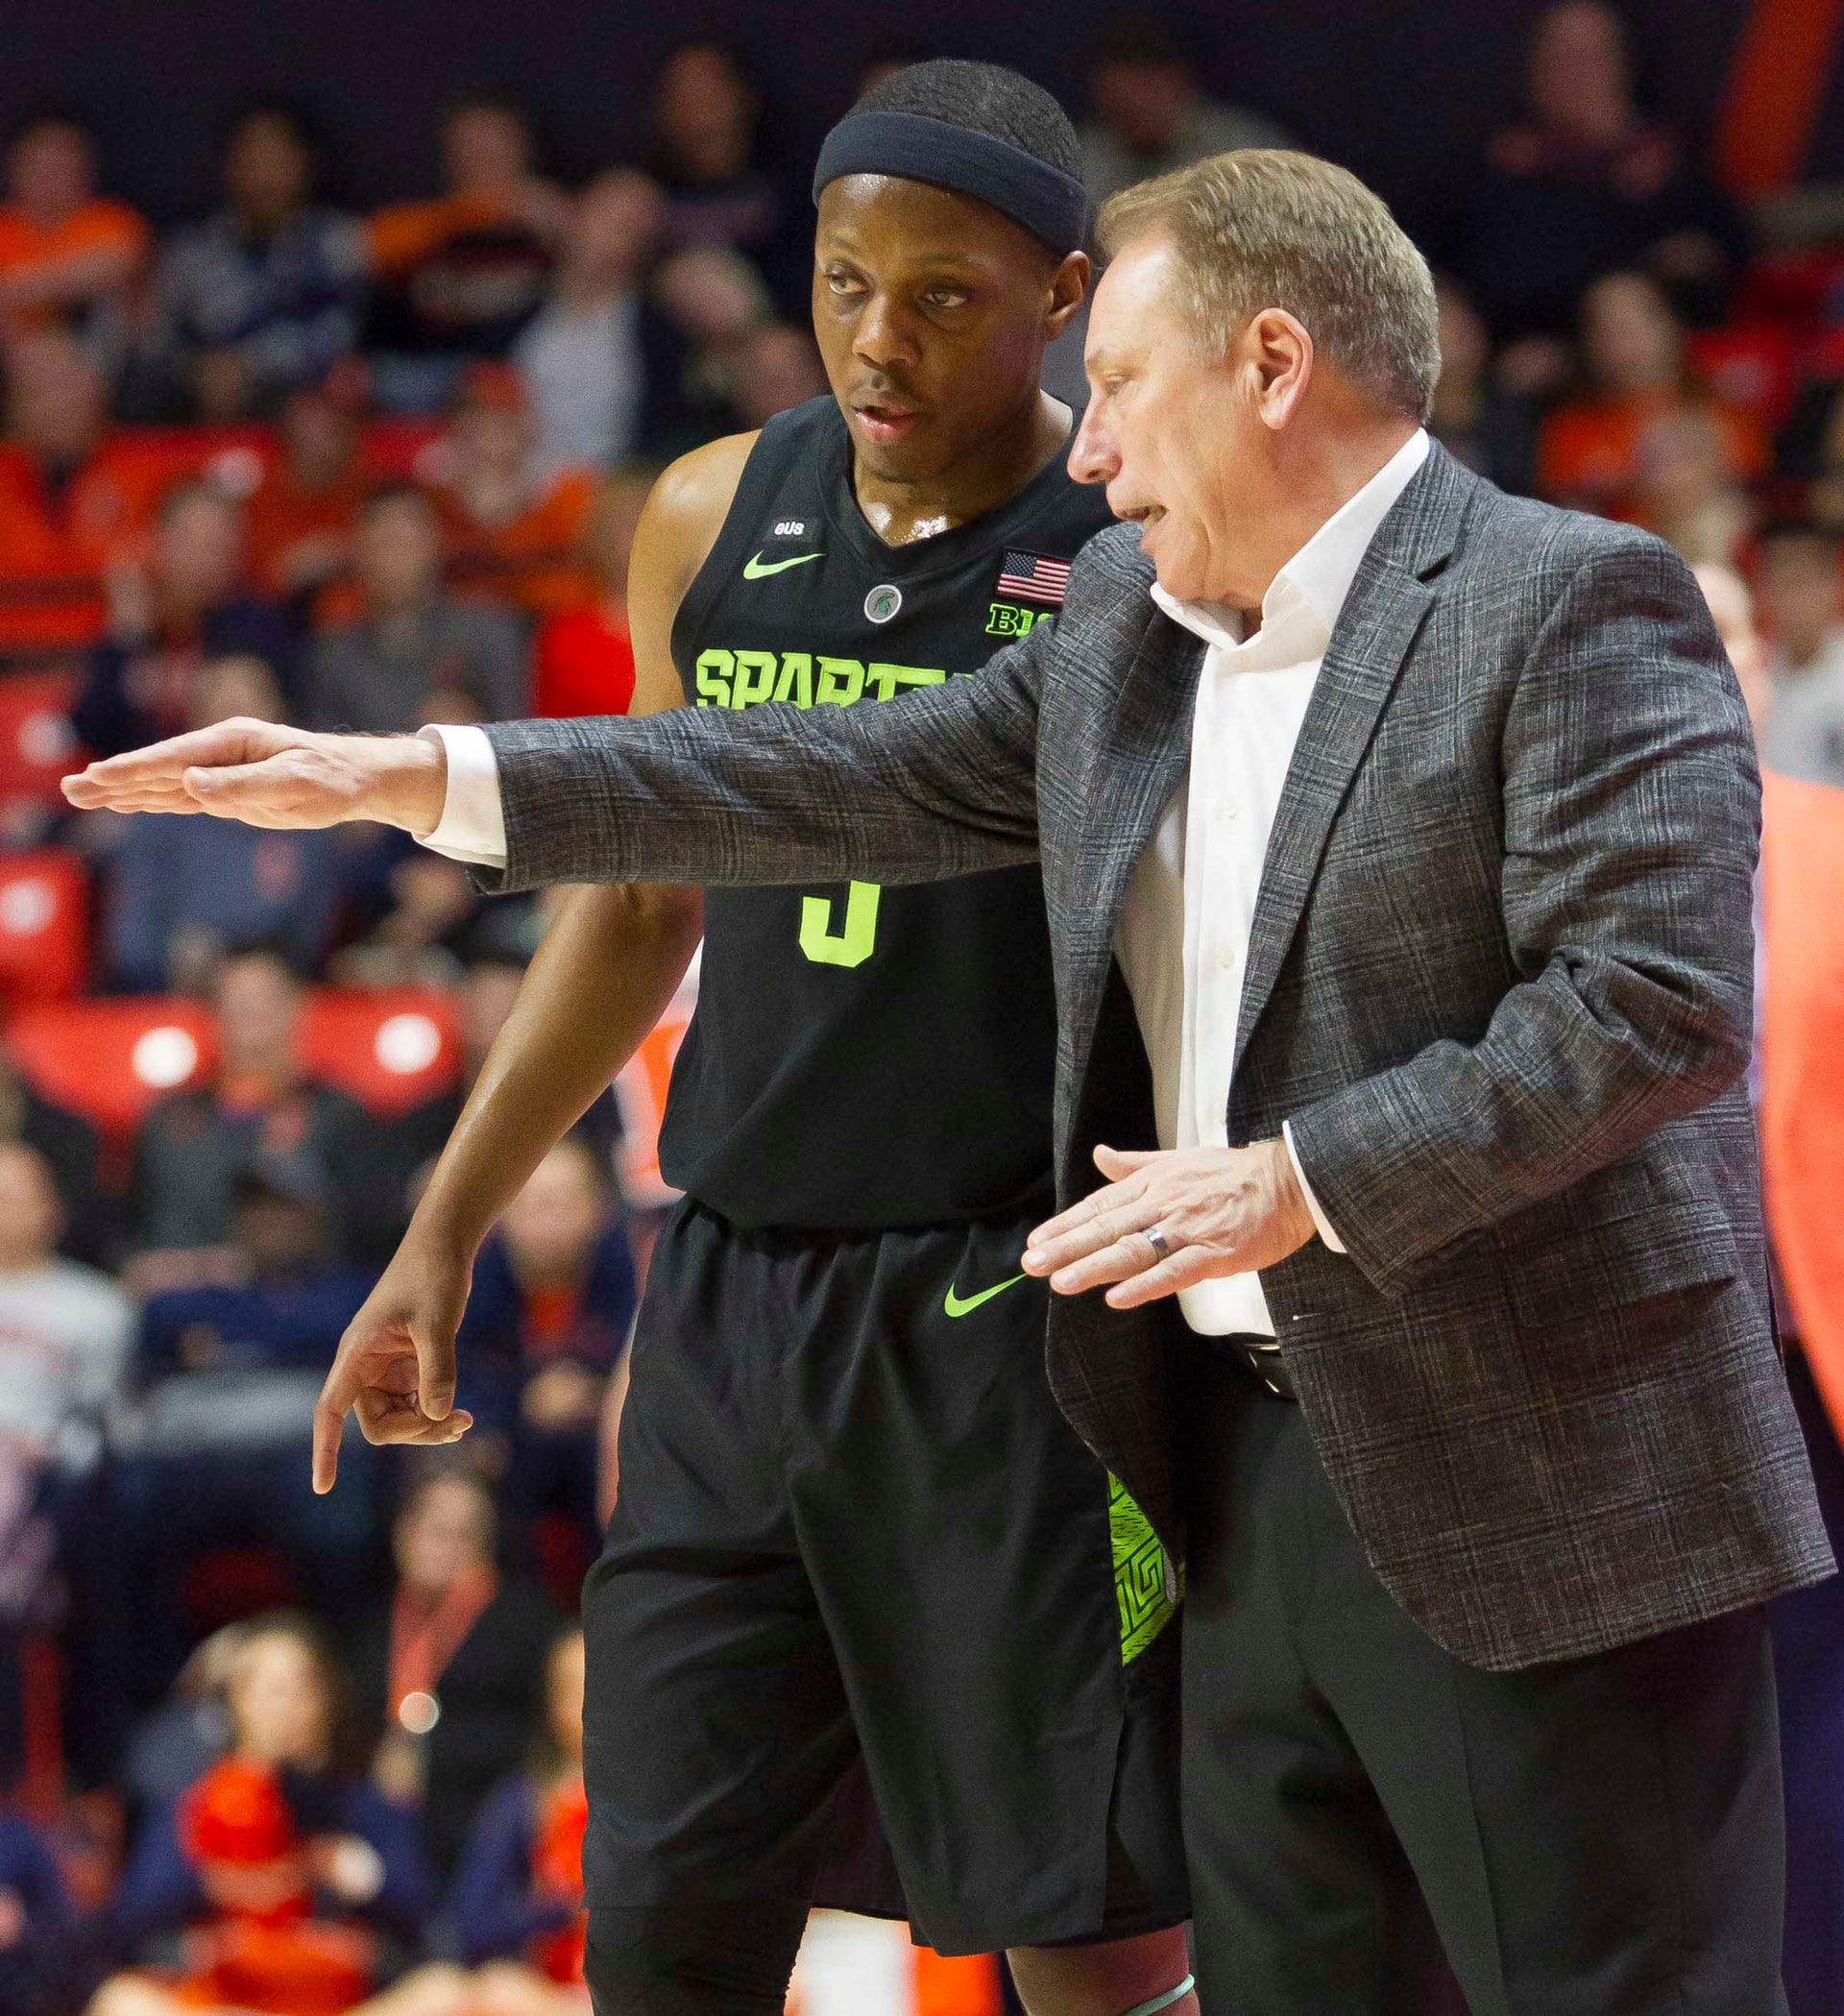 Michigan State coach Tom Izzo has a discussion with guard Cassius Winston during the second half of MSU's 79-74 loss to Illinois on Tuesday, Feb. 5, 2019, in Champaign, Ill.